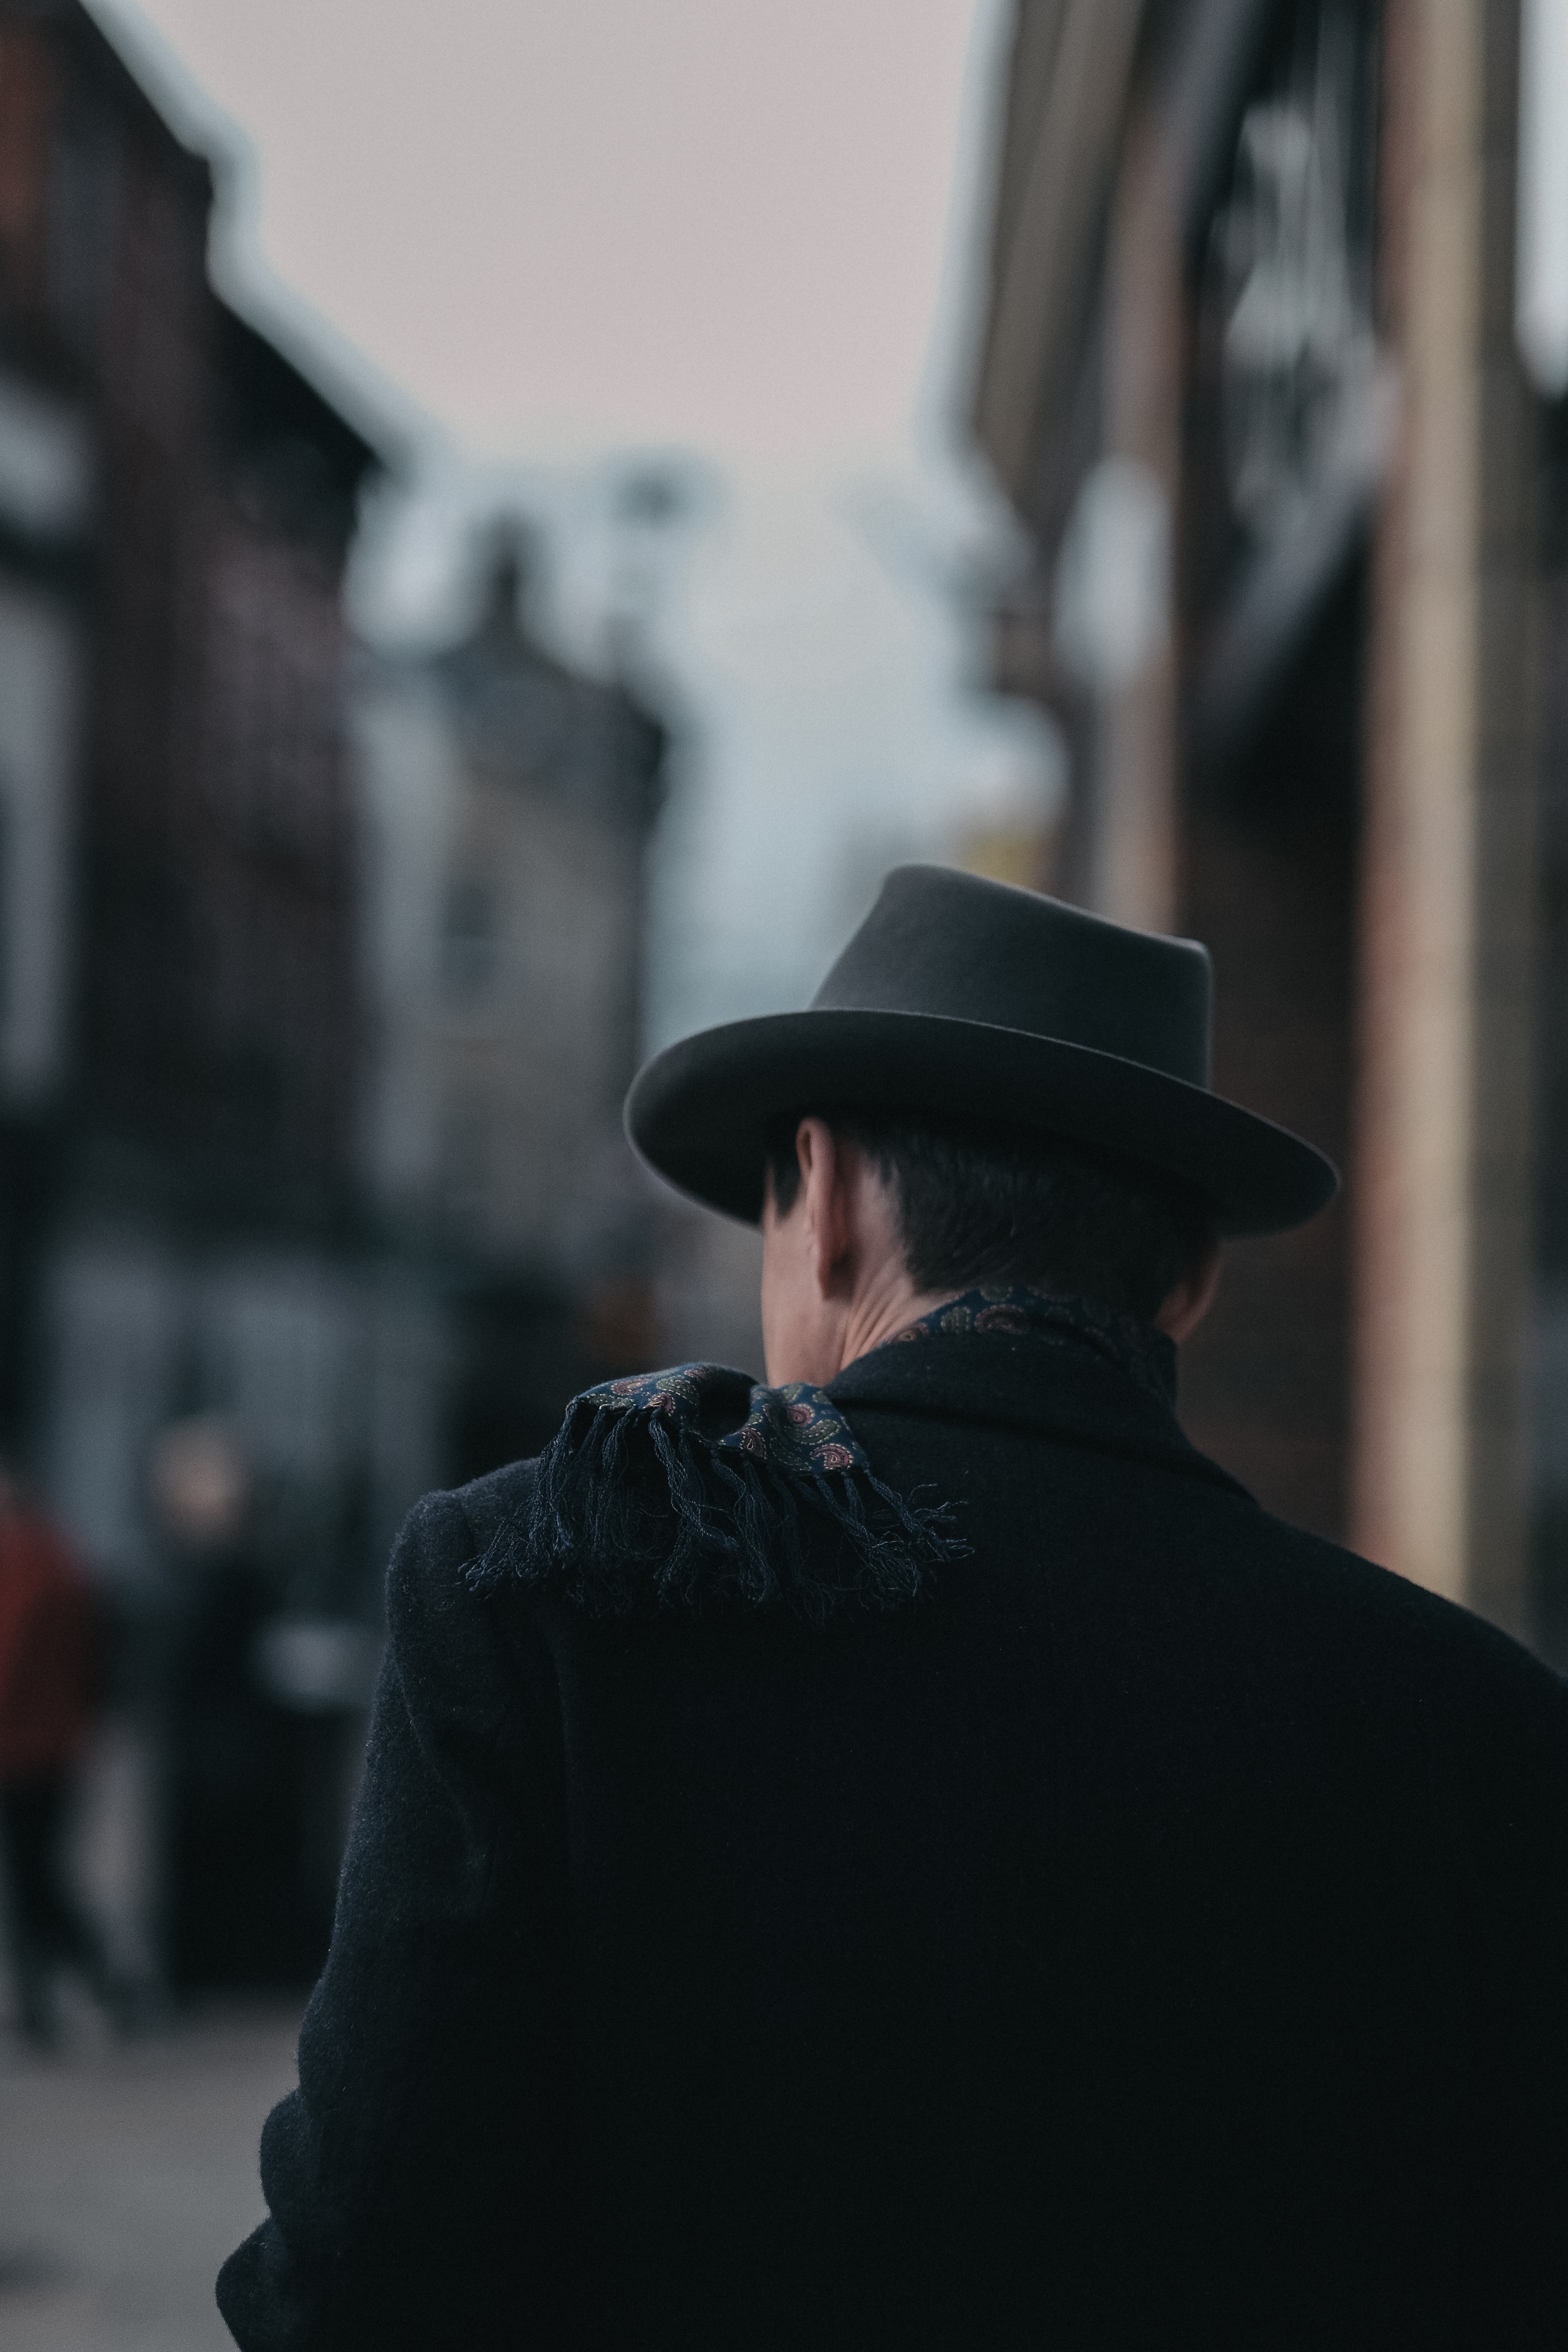 A shadowed man in a hat faces away on a blurred street in Cambridge